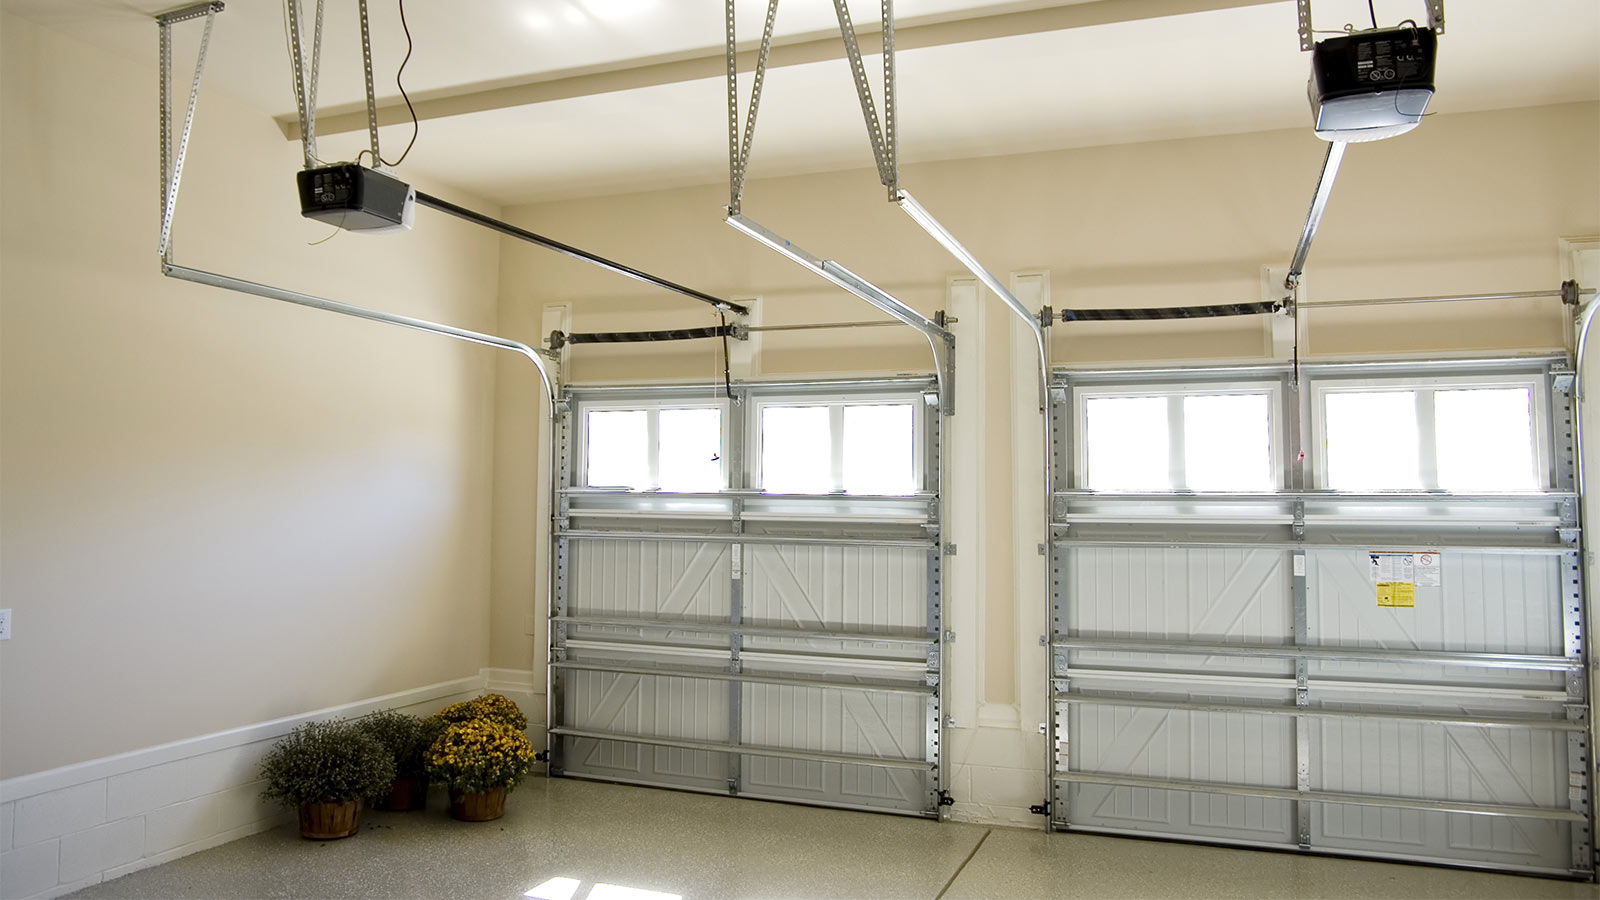 Sectional Garage Doors from Roller Shutters Chigwell suppliers.